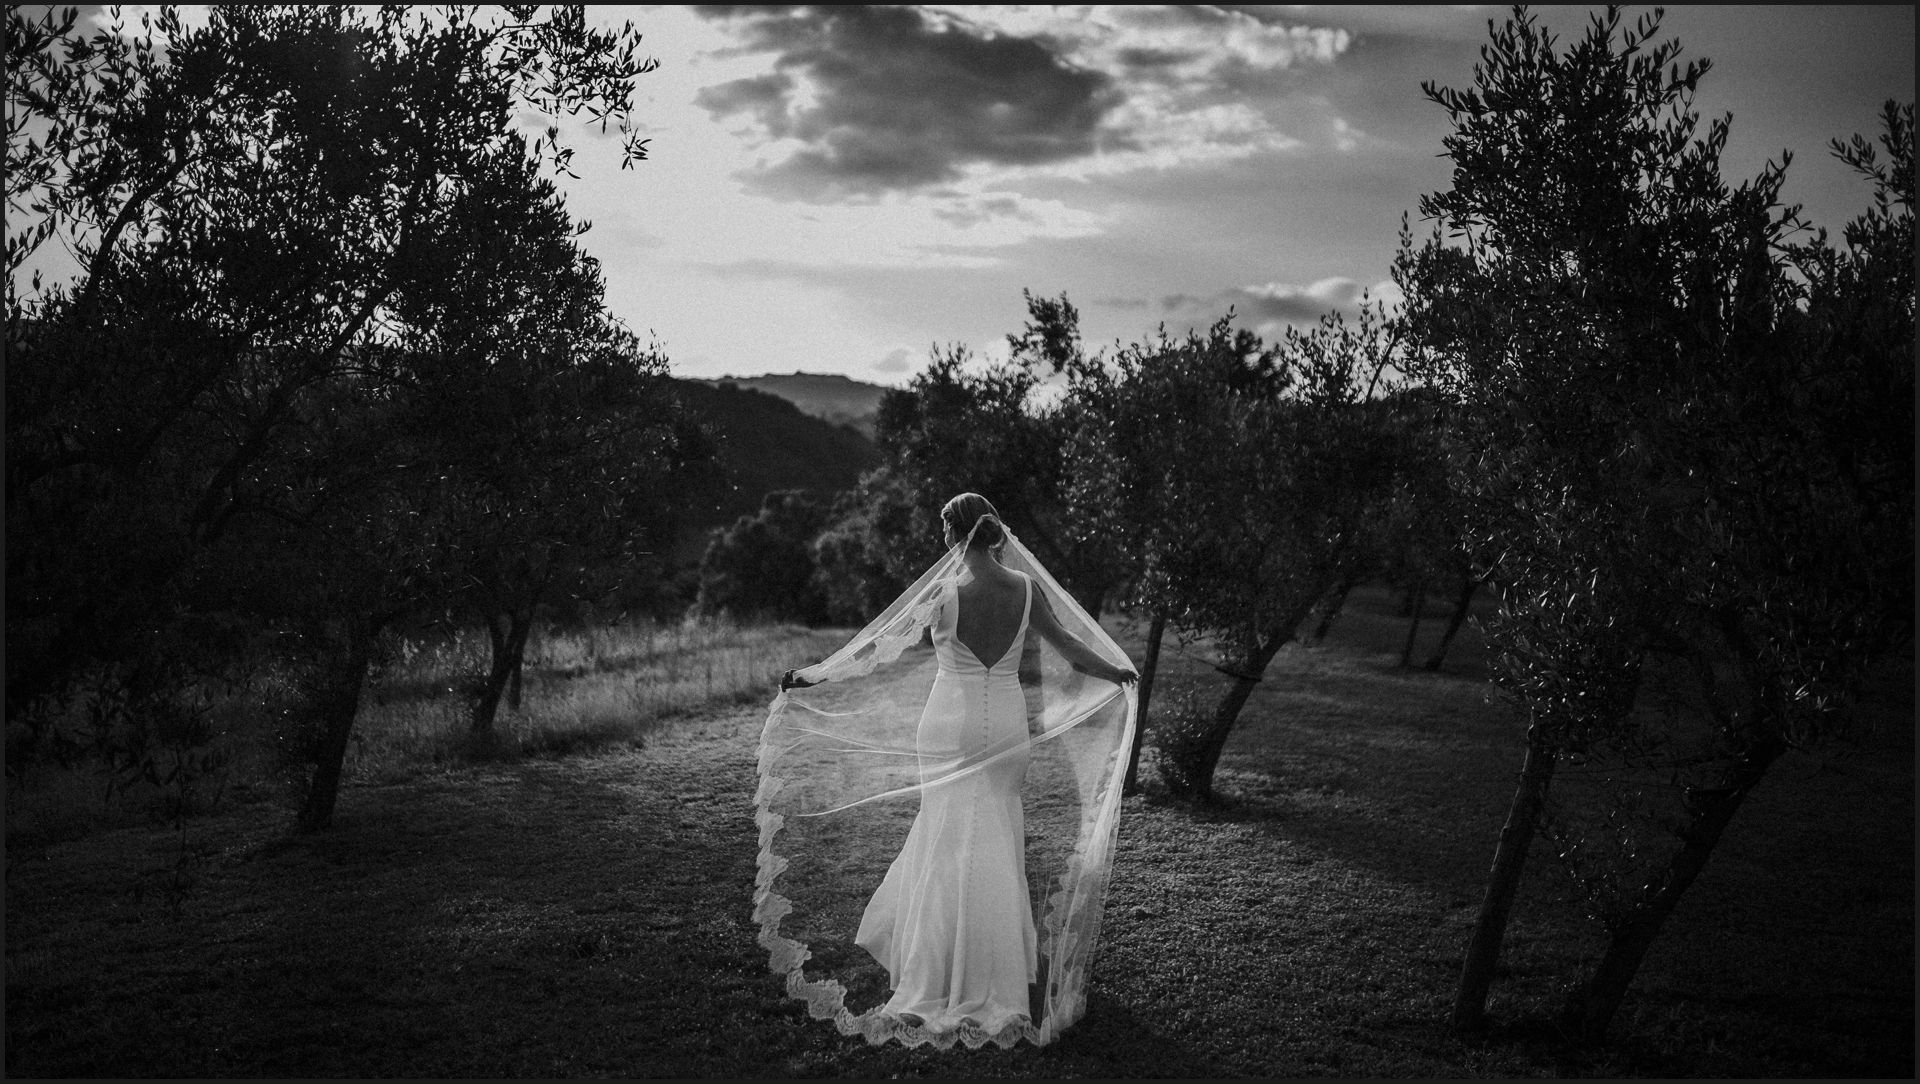 tenuta di canonica, umbria, wedding, bride, groom, love, veil, black and white